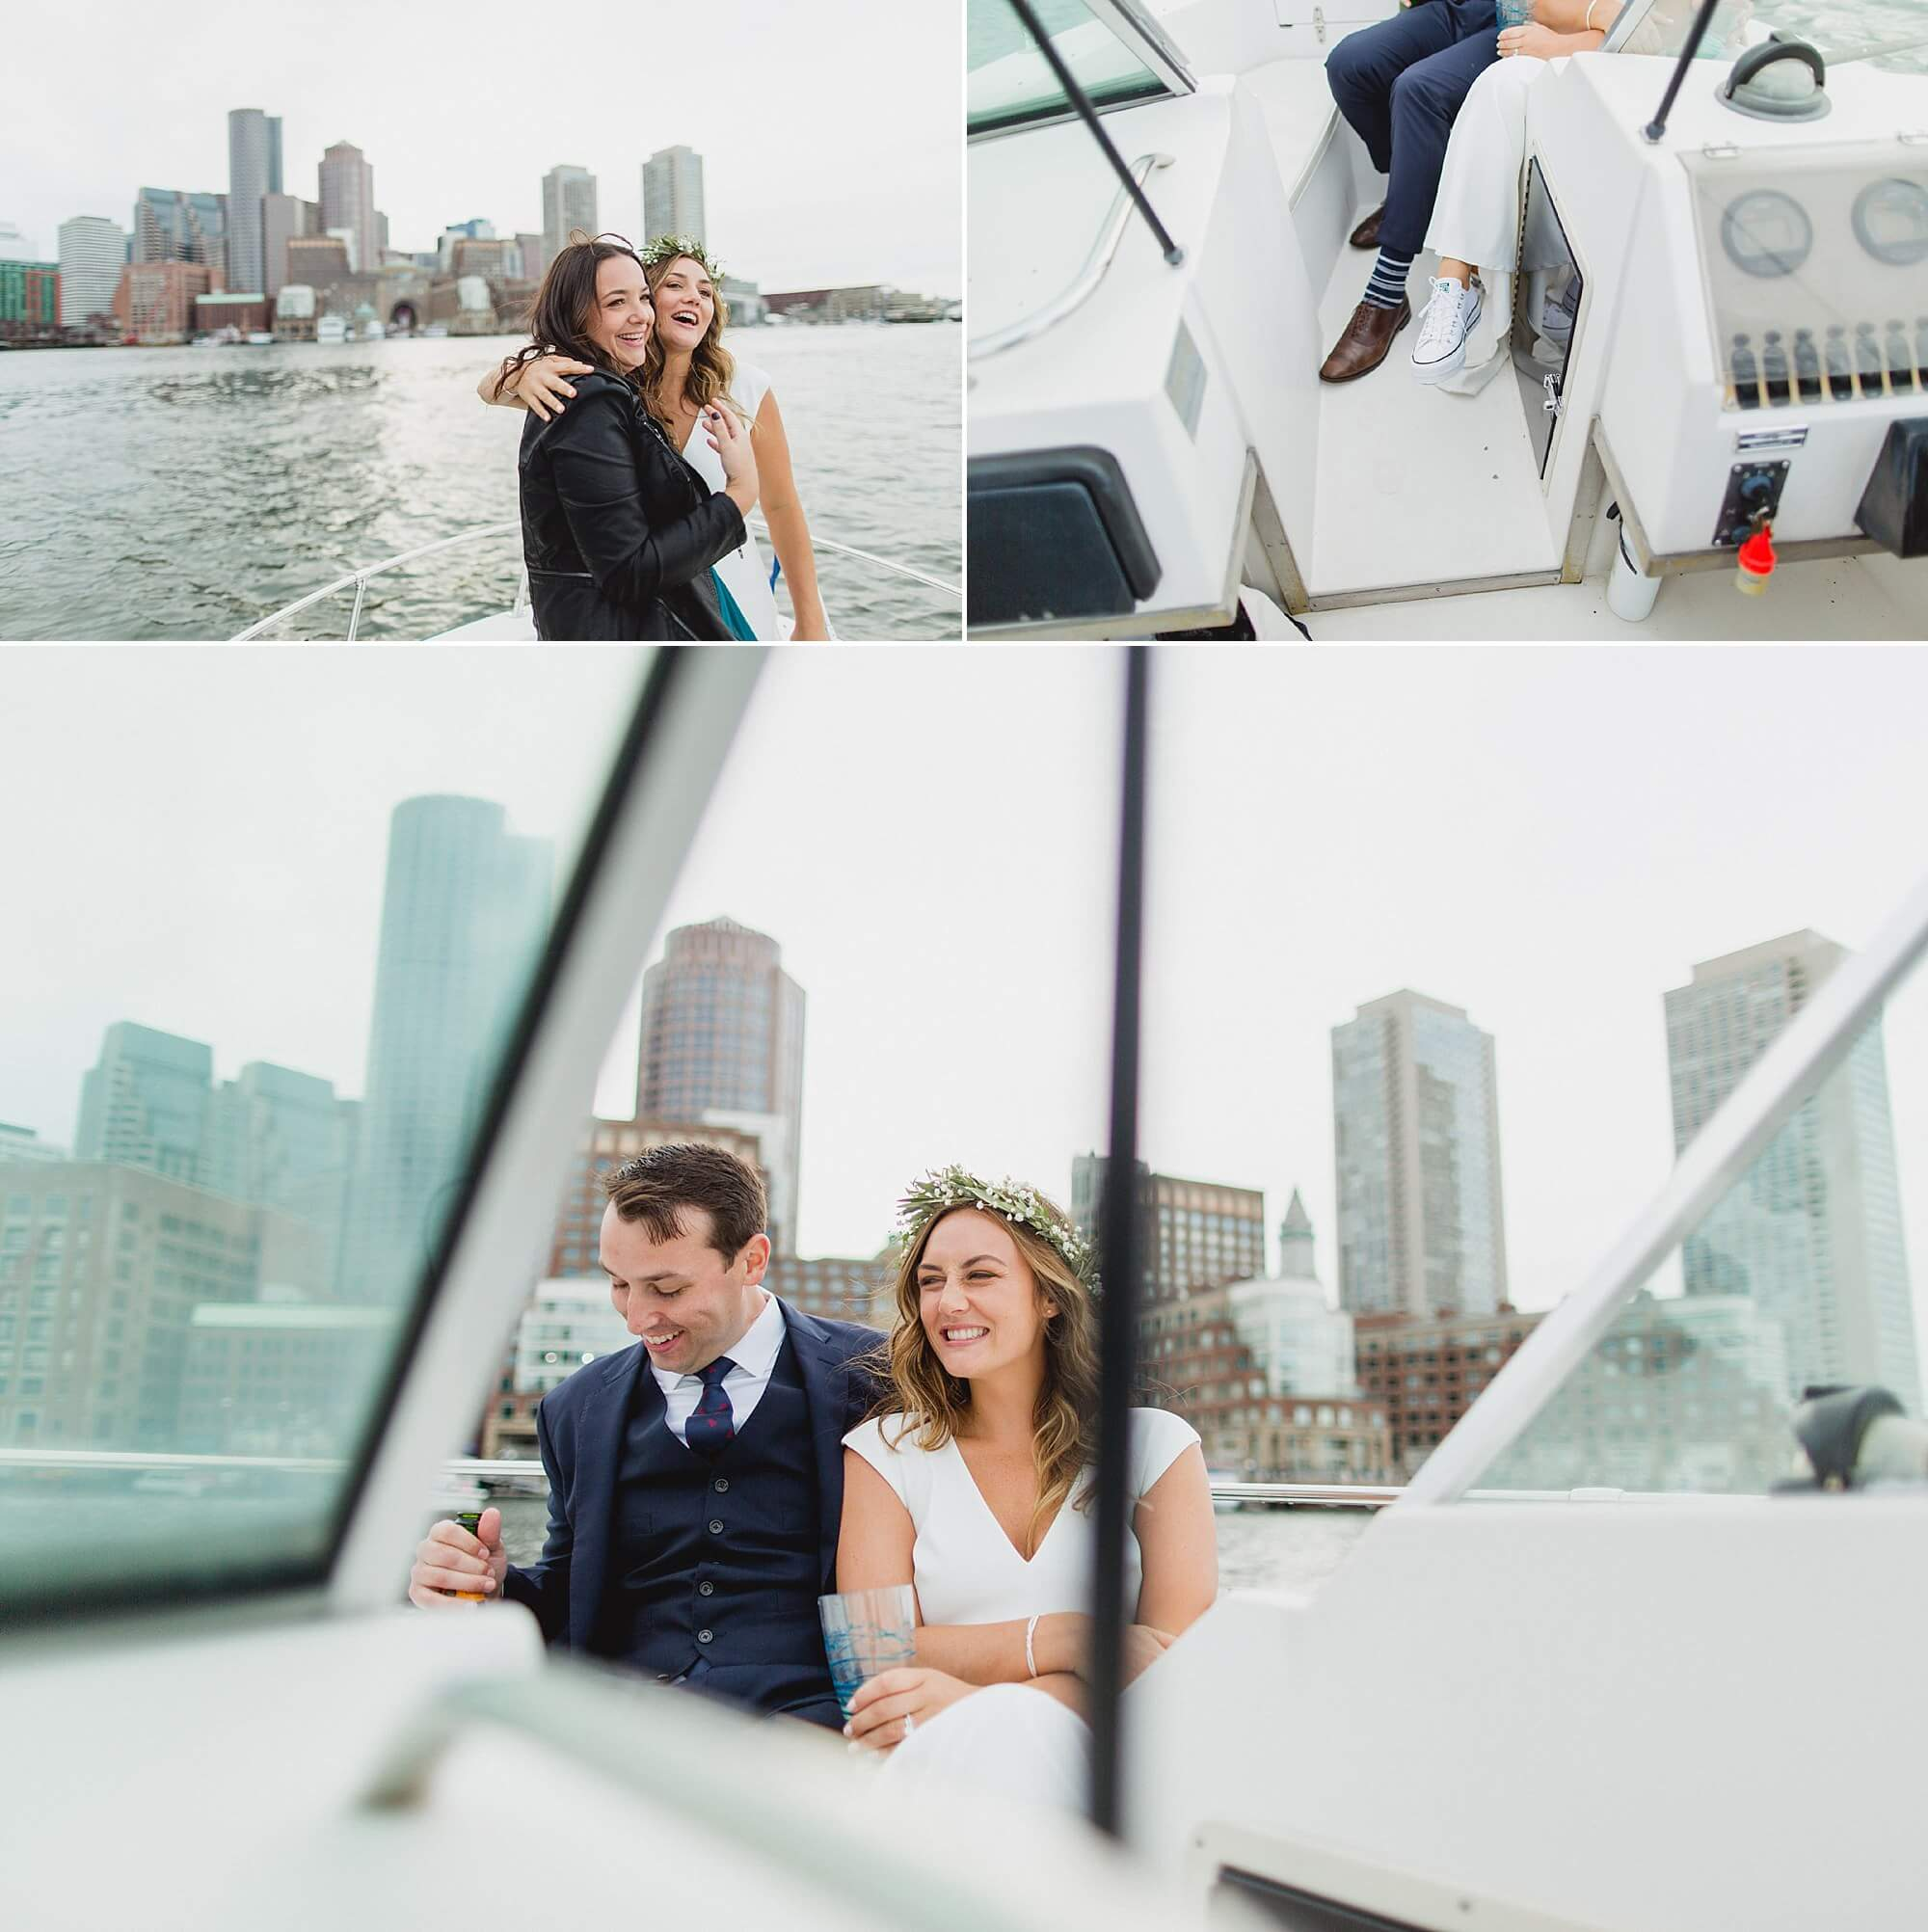 Boston Seaport Wedding - Ebersole Photo_0022.jpg